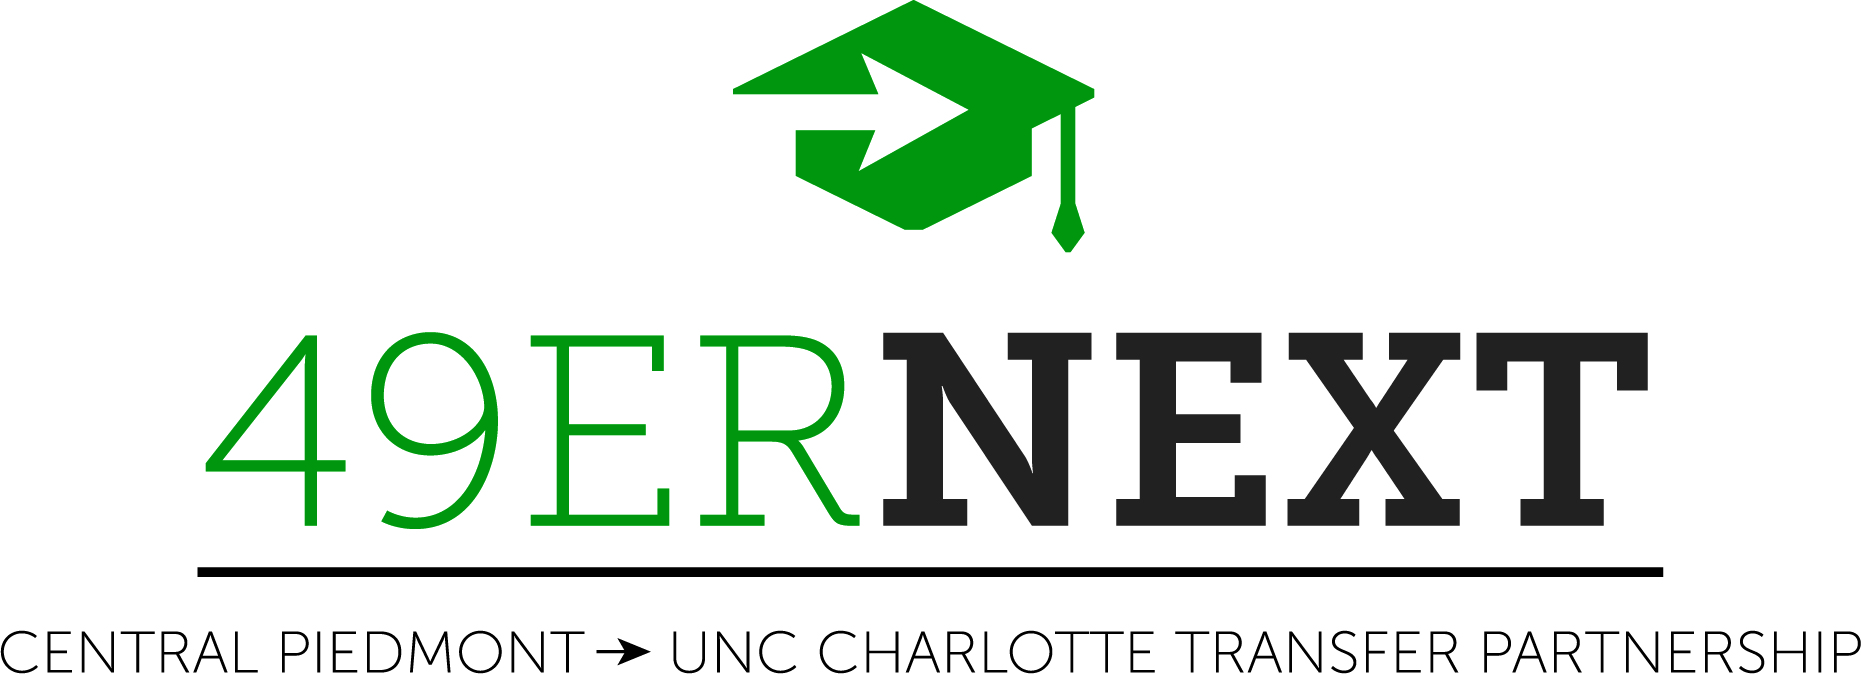 49erNext program logo: Central Piedmont/UNC Charlotte transfer partnership